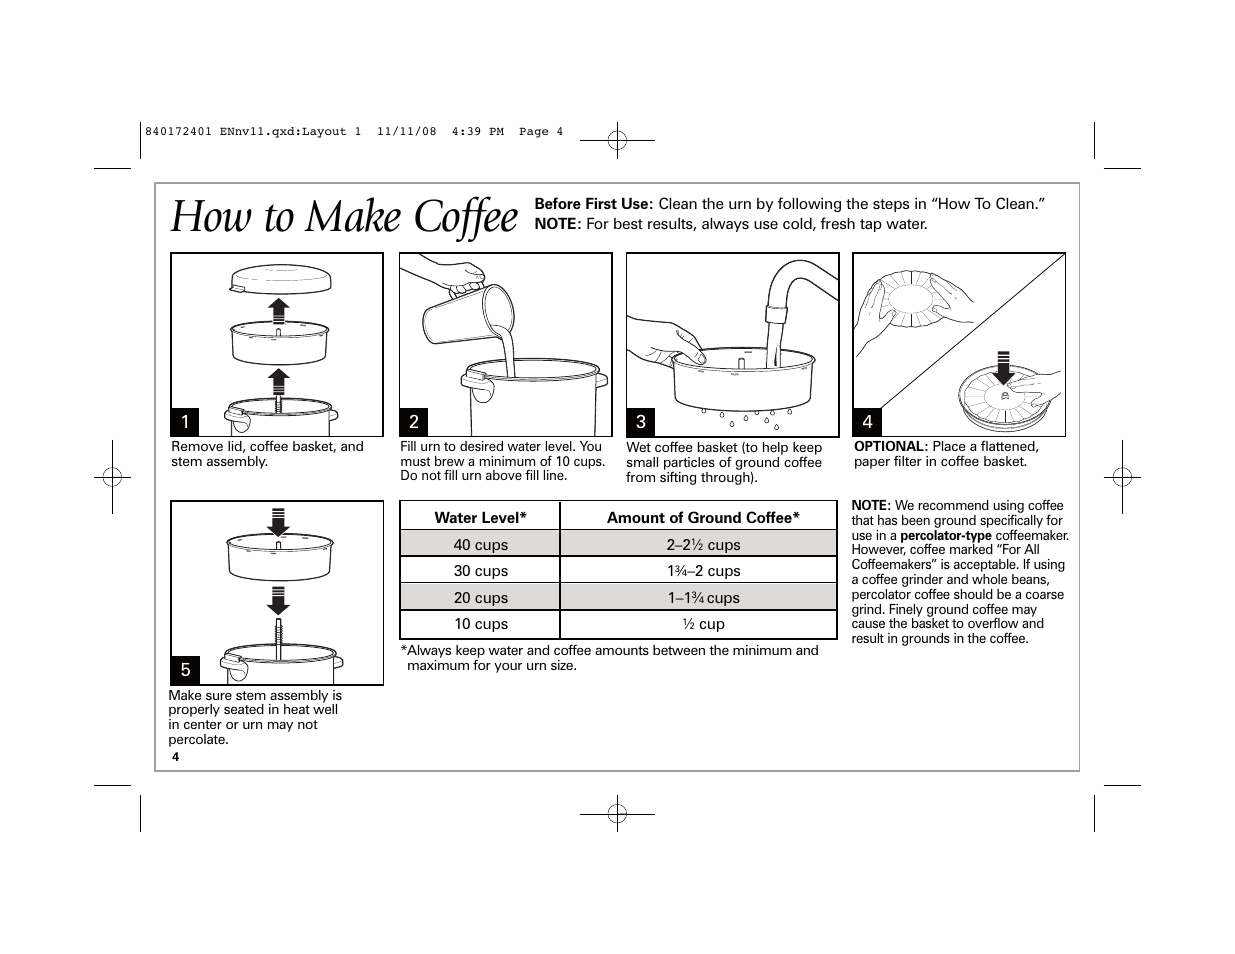 How to make coffee | Hamilton Beach BrewStation 40540 User Manual | Page 4  / 28